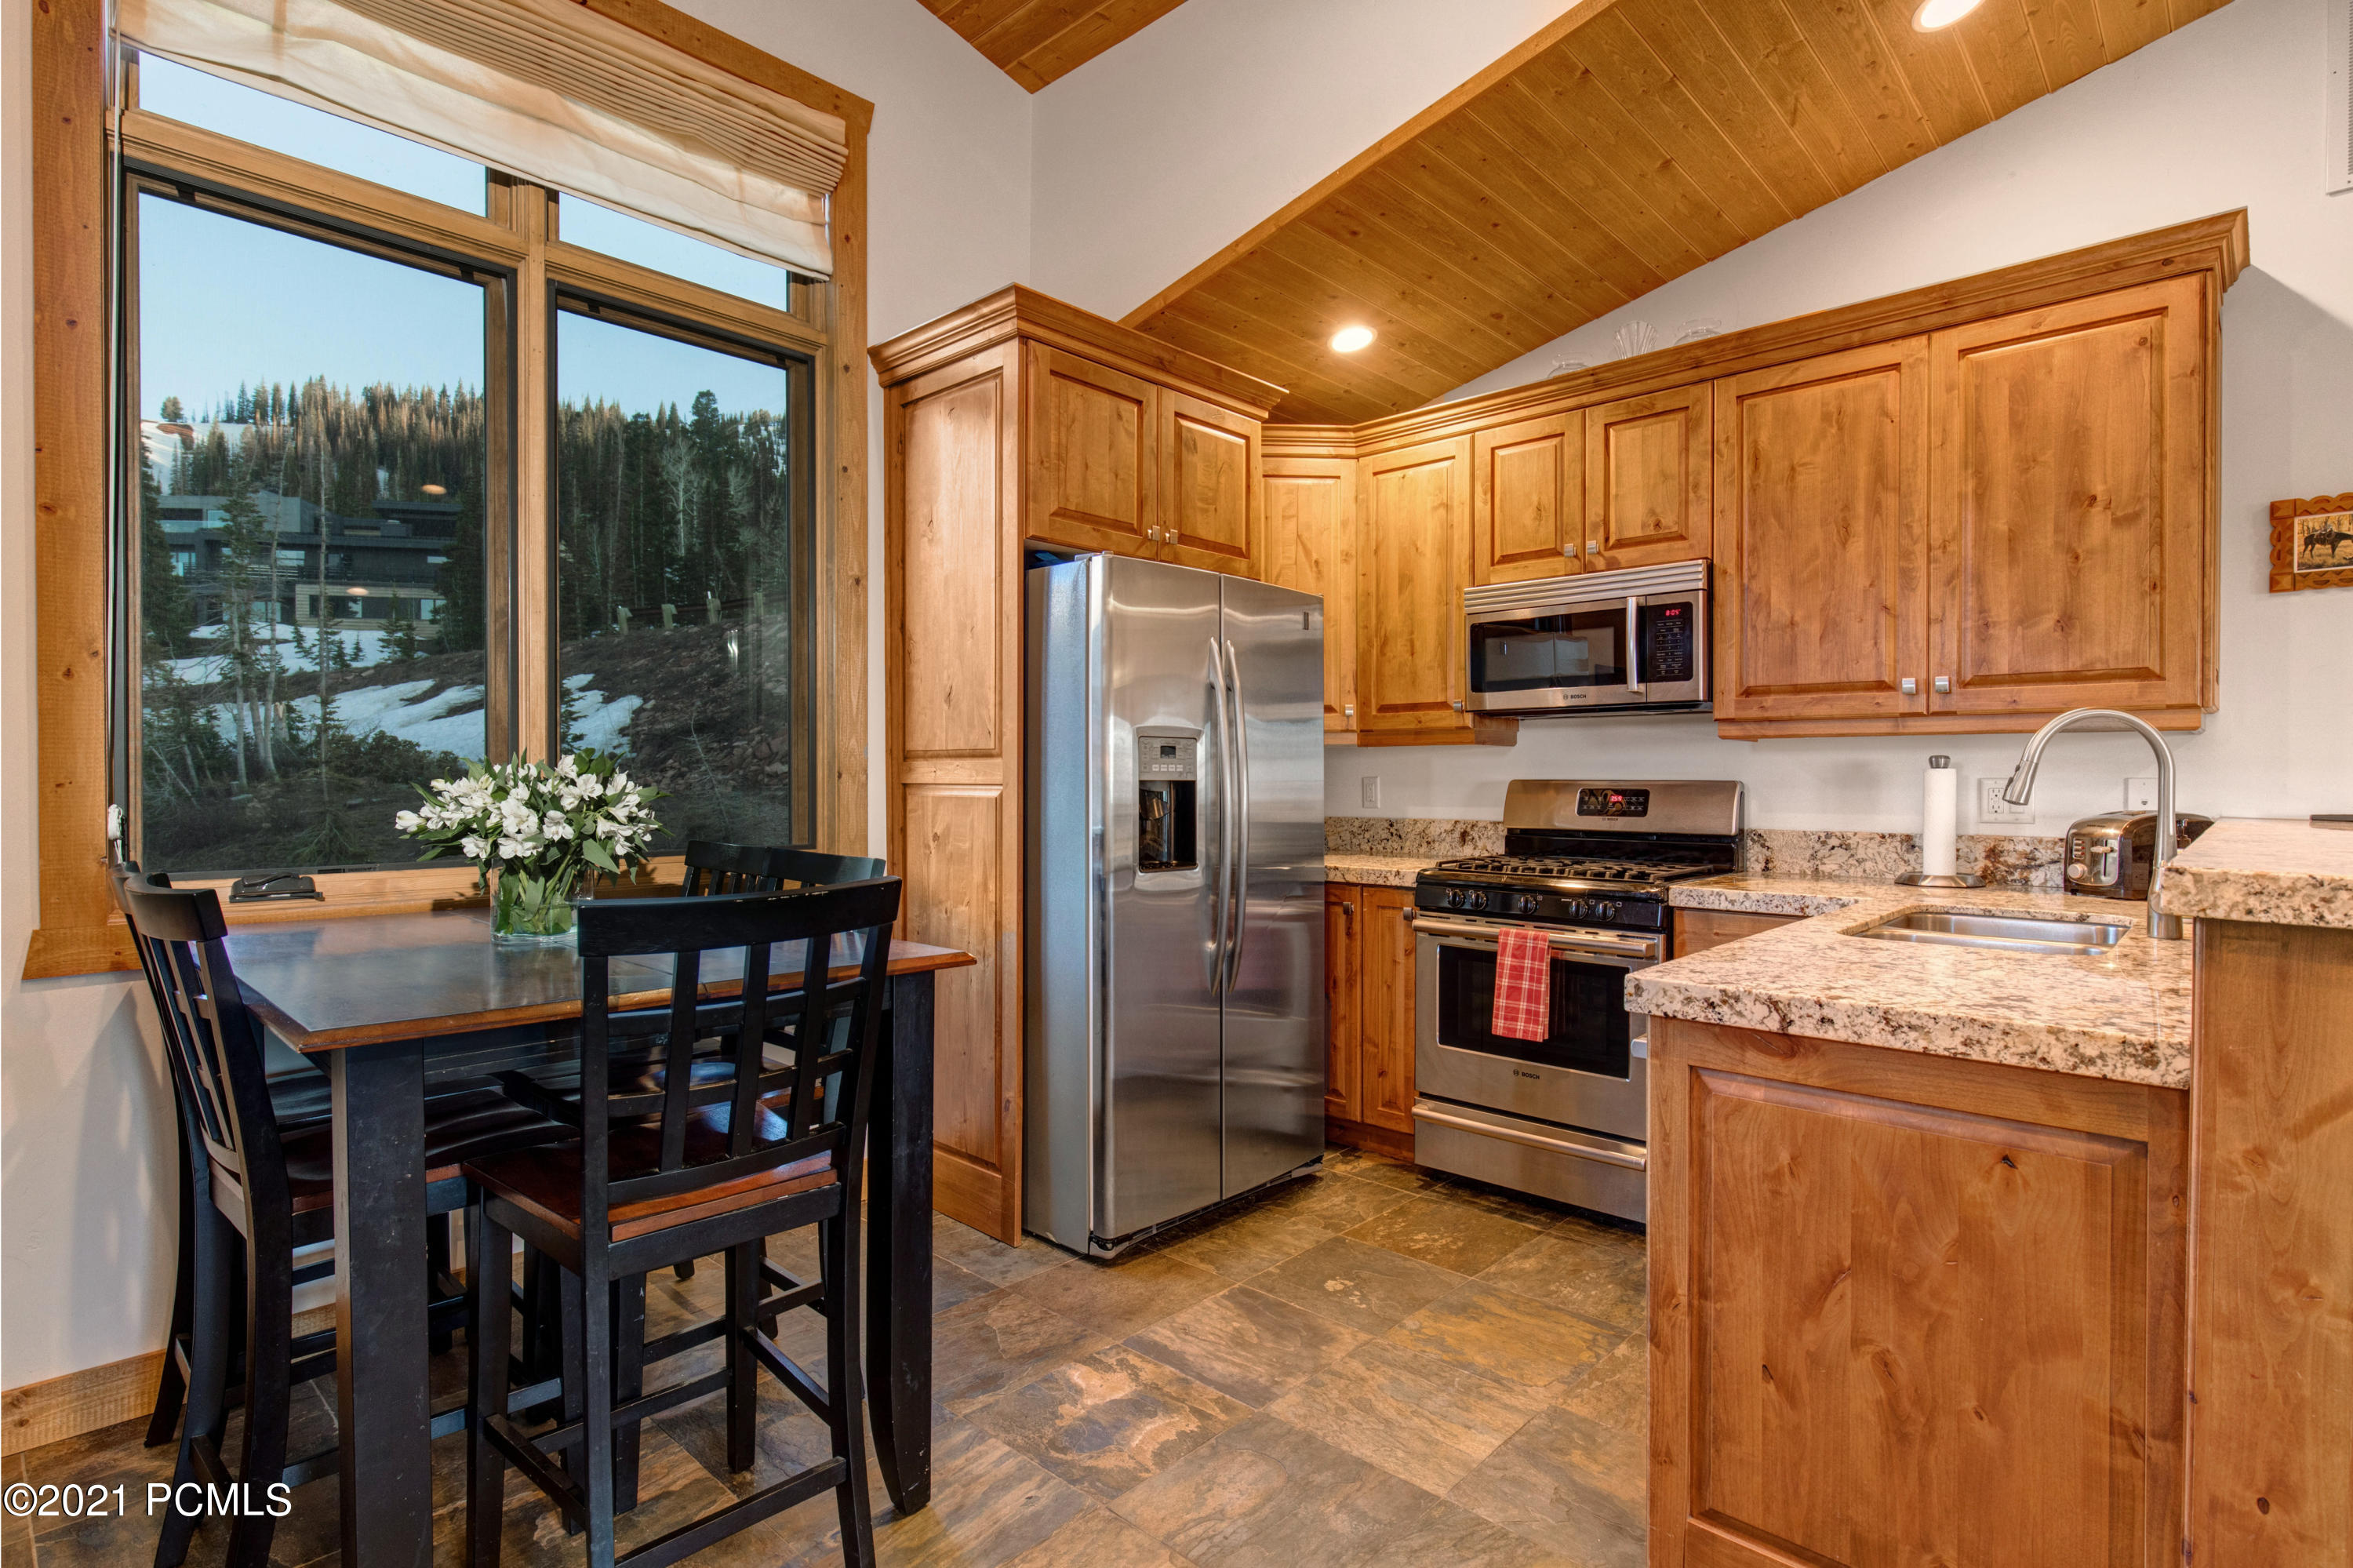 147 White Pine Canyon Road, Park City, Utah 84060, 8 Bedrooms Bedrooms, ,10 BathroomsBathrooms,Single Family,For Sale,White Pine Canyon,12102053